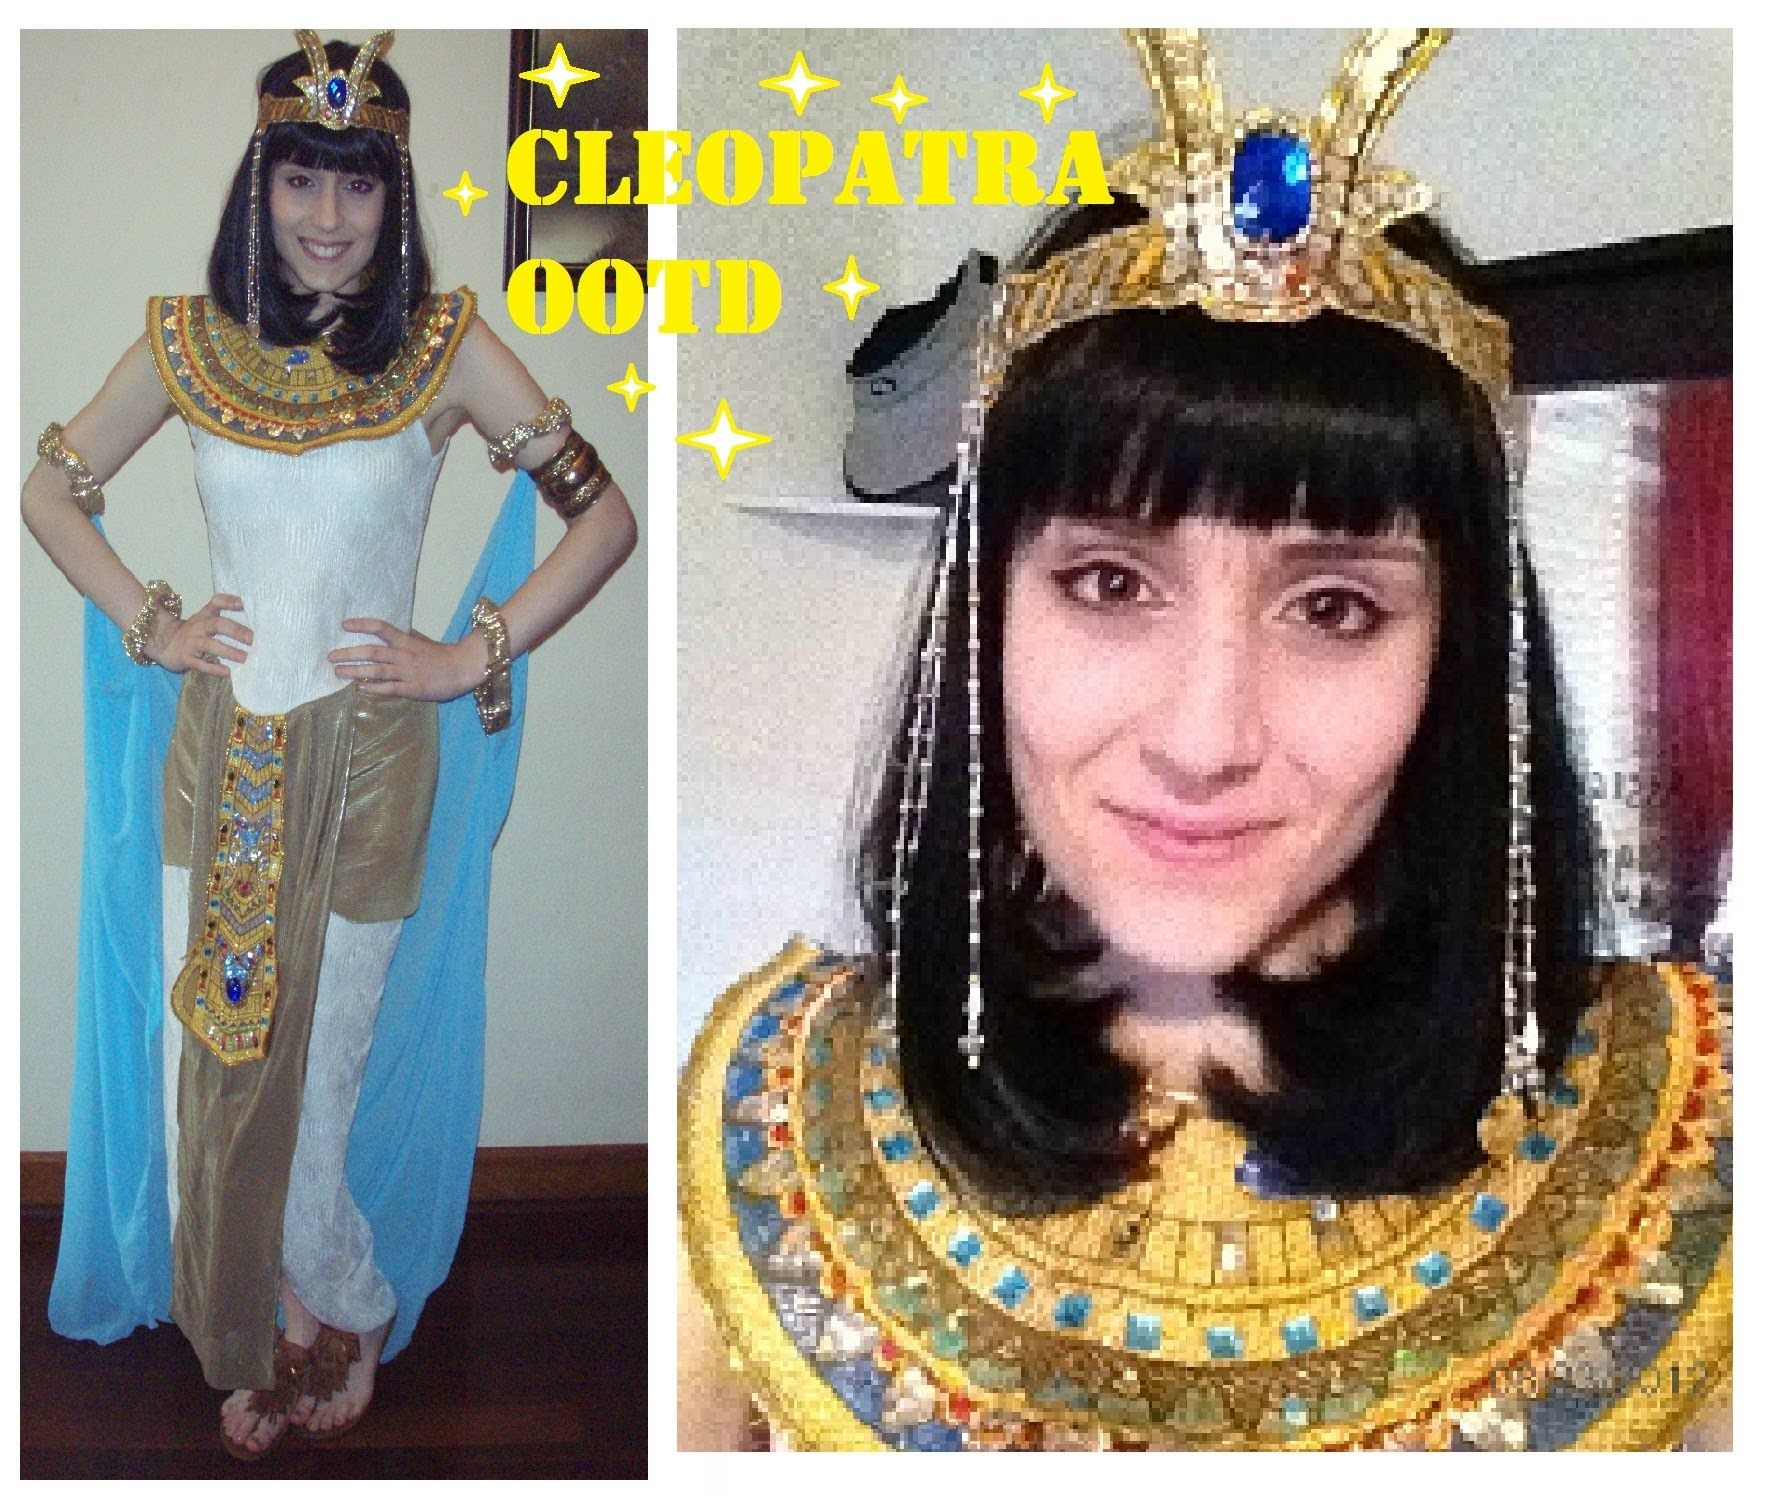 Home gt gt cleopatra costumes gt gt jewel of the nile egyptian adult - Easy Cleopatra Costume Make Up Ootd Outfit Of The Day Liz Taylor Cleo Costume Pinterest